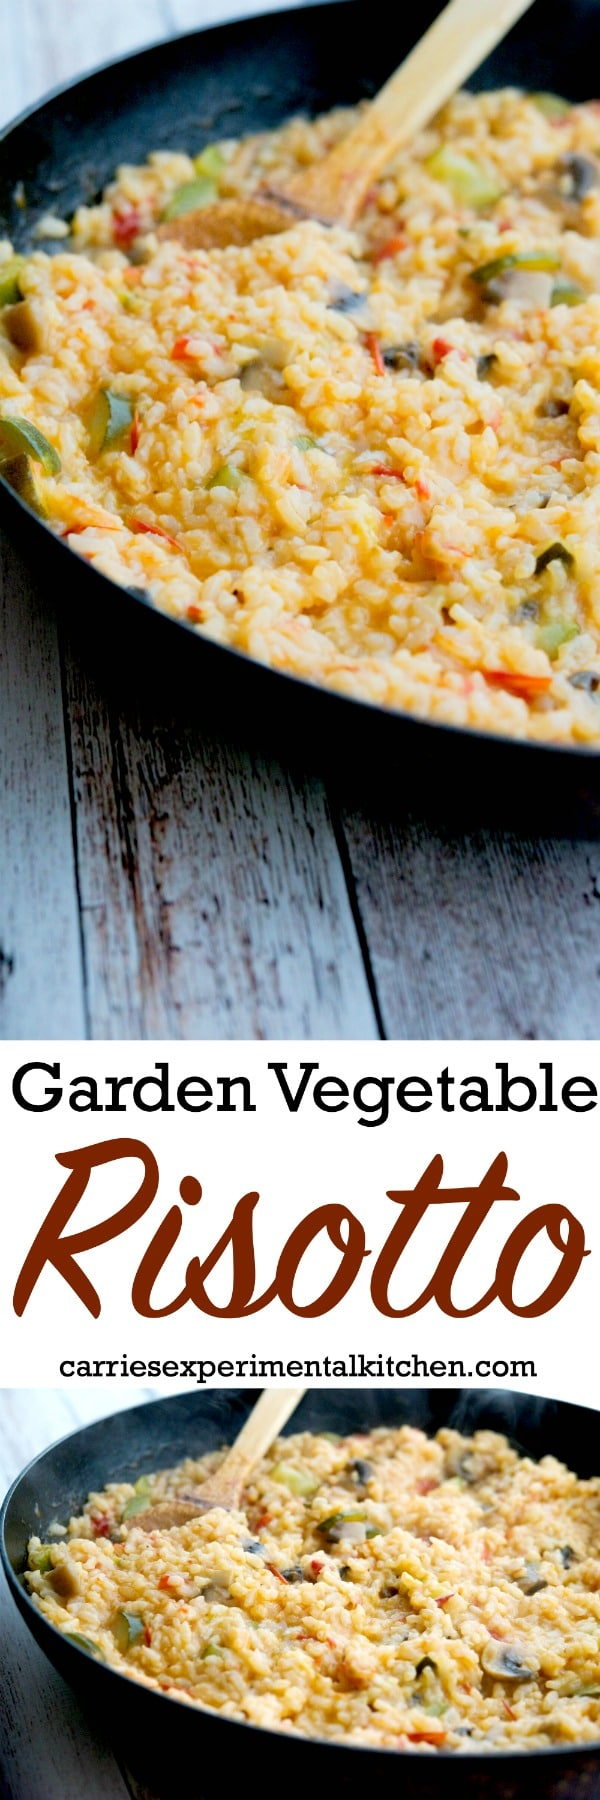 Use your favorite vegetables like tomatoes, zucchini, mushrooms and onions in this delicious Italian side dish for Garden Vegetable Risotto. #risotto #rice #vegetables #sides